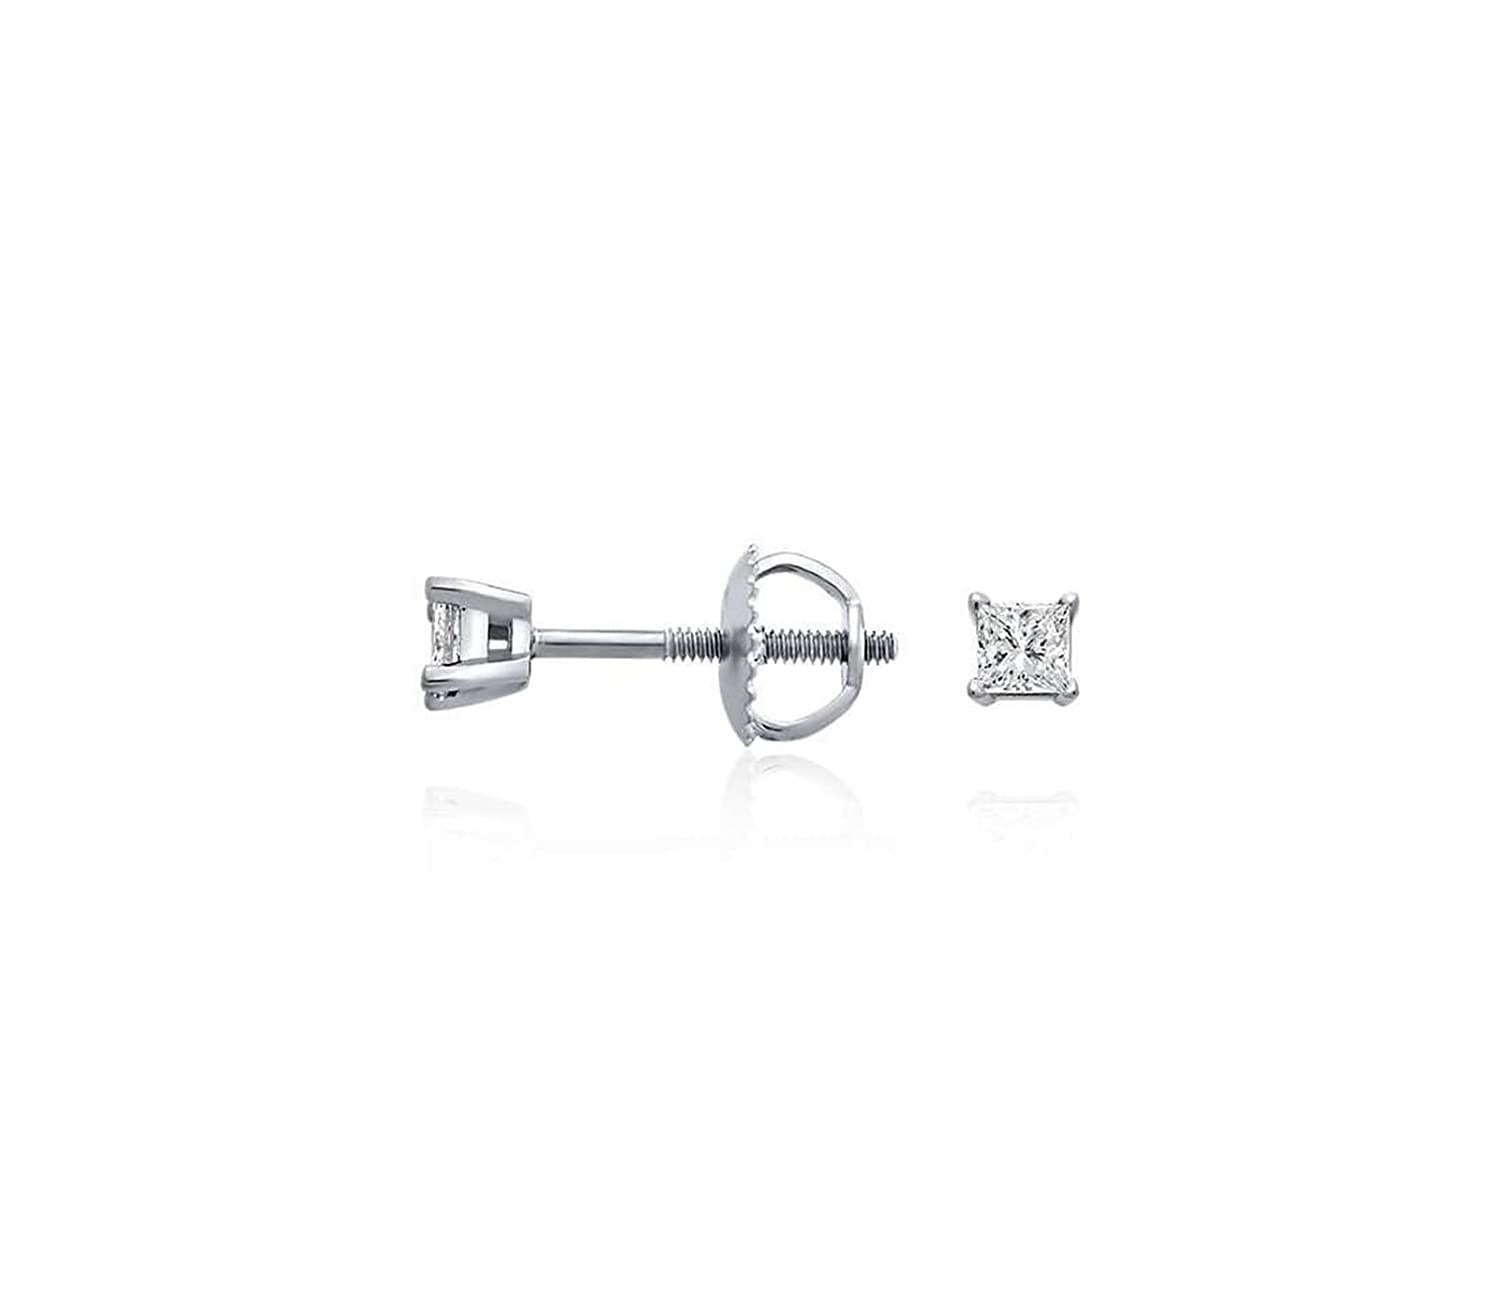 Clara Pucci 0.40 CT Princess Brilliant Cut Solitaire Stud Earrings in 14k White Gold Screw Back